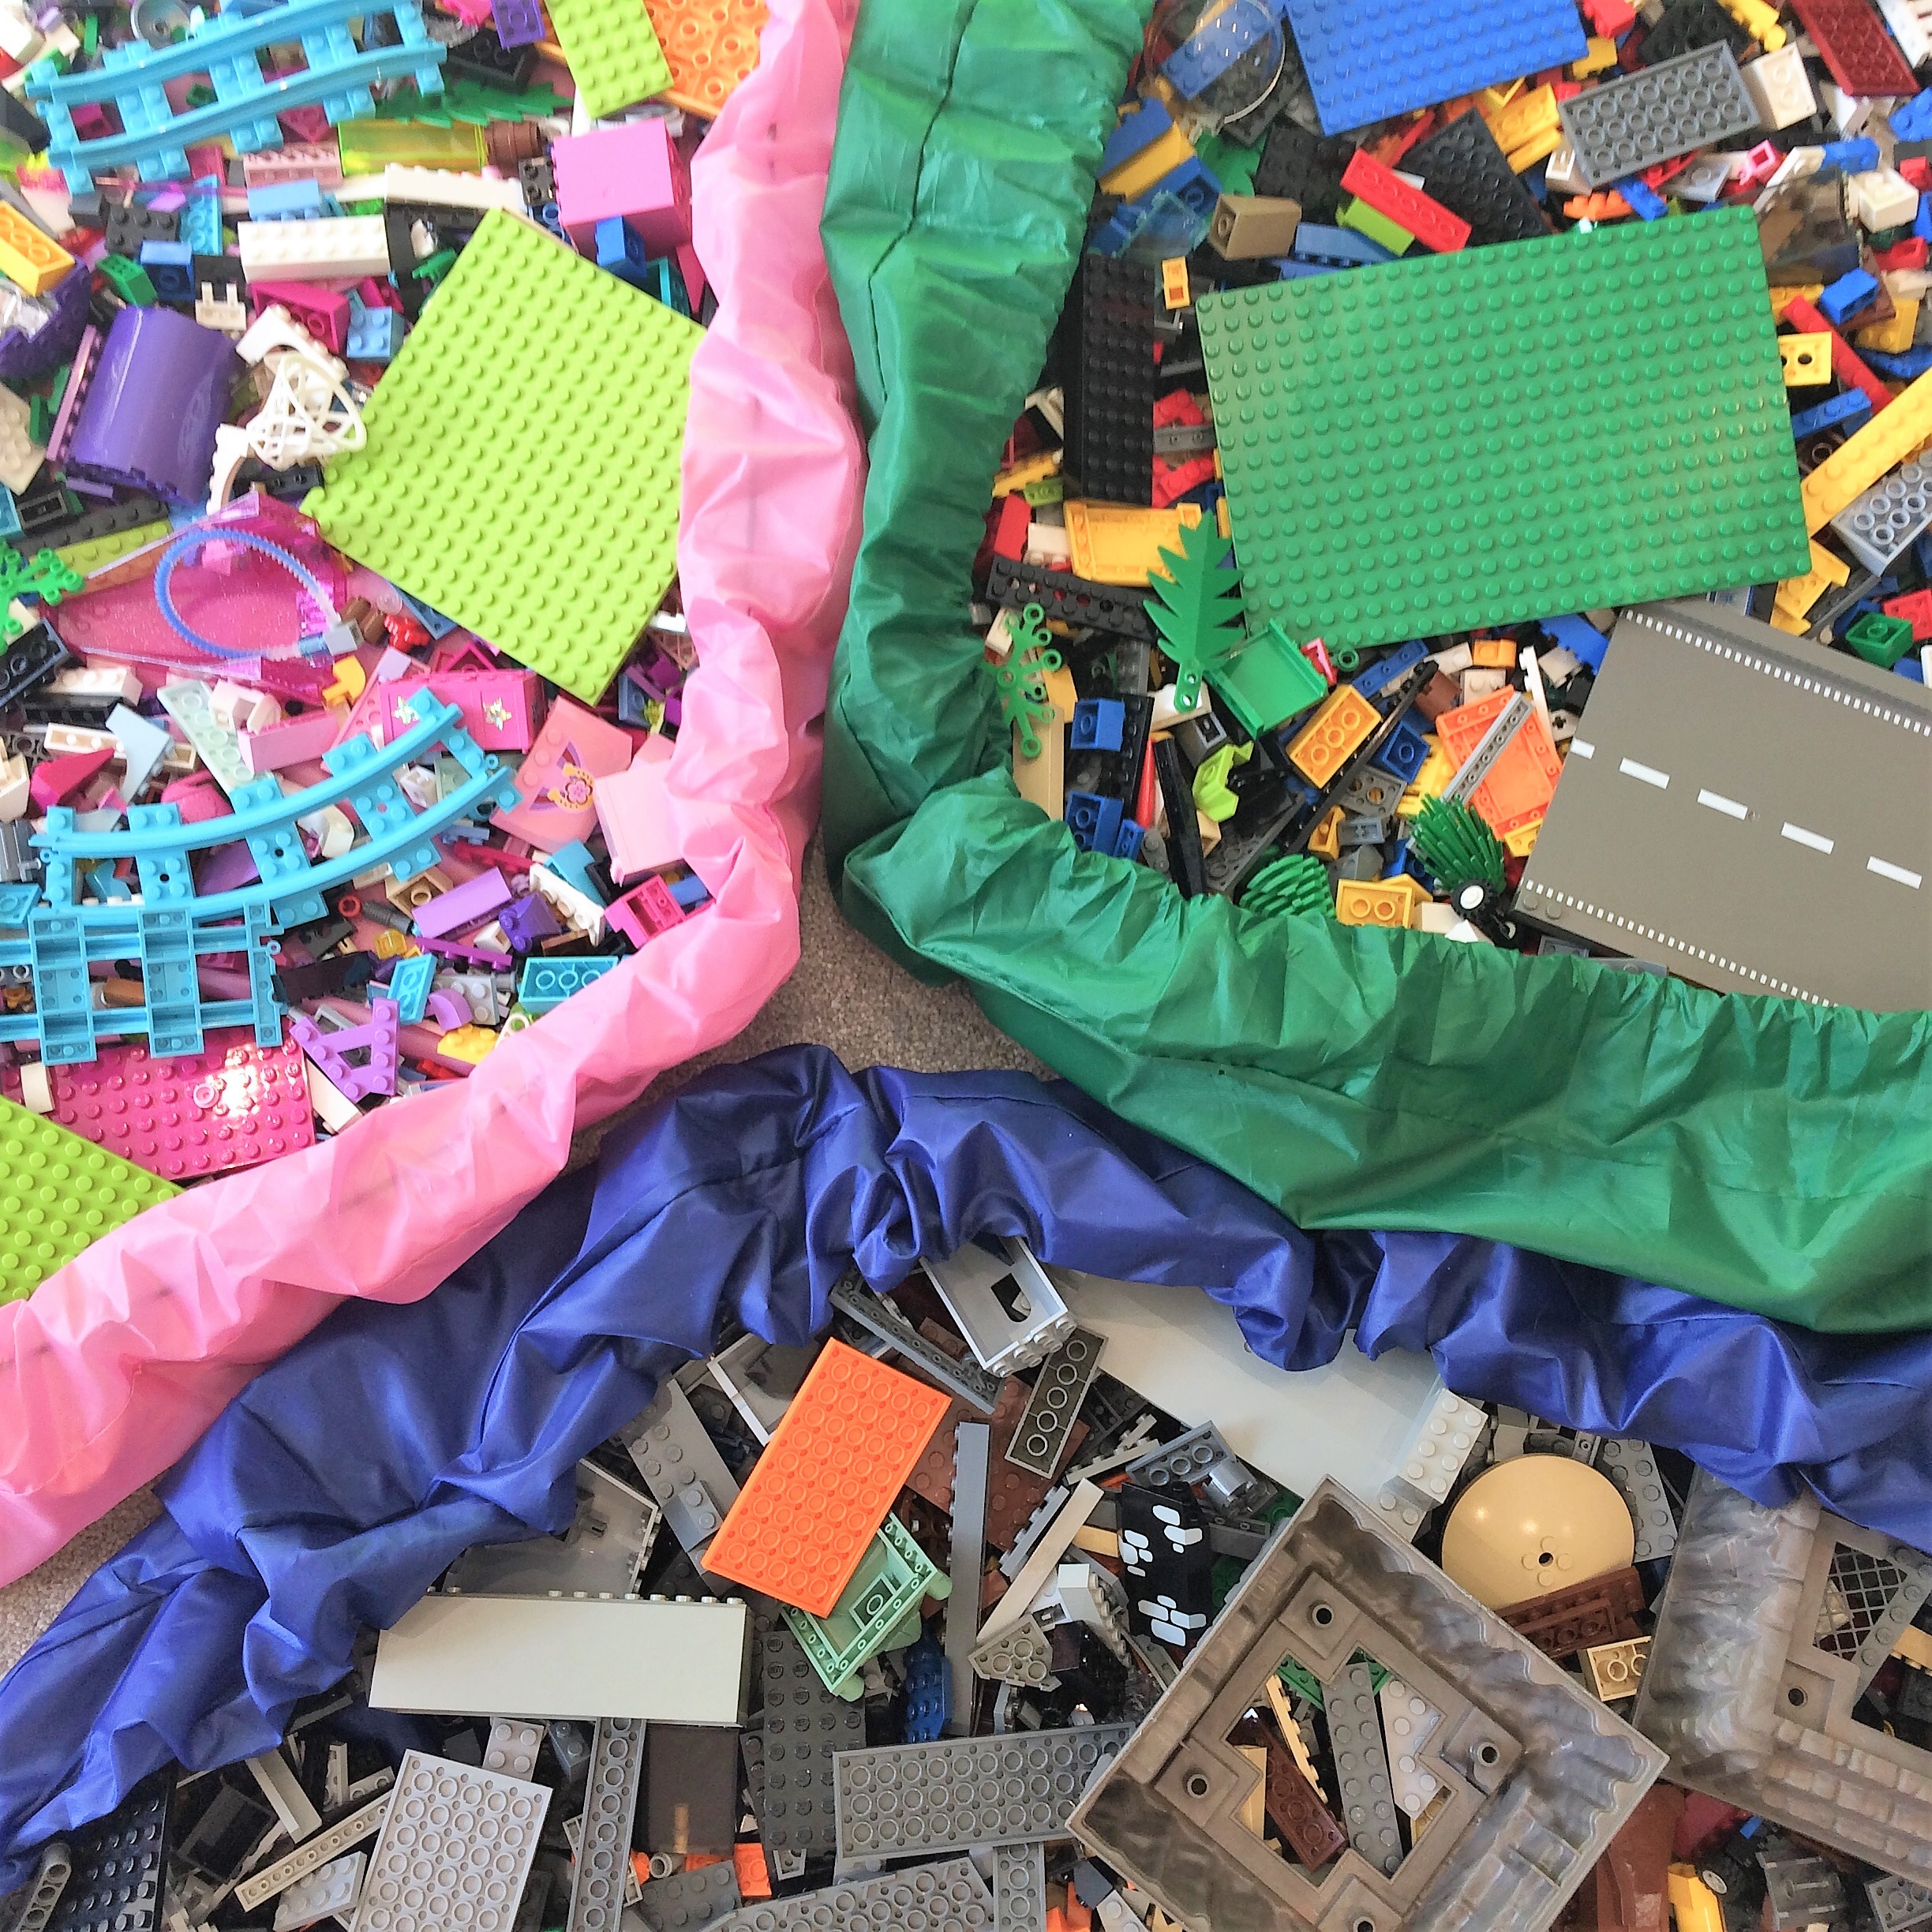 Coloured play pits